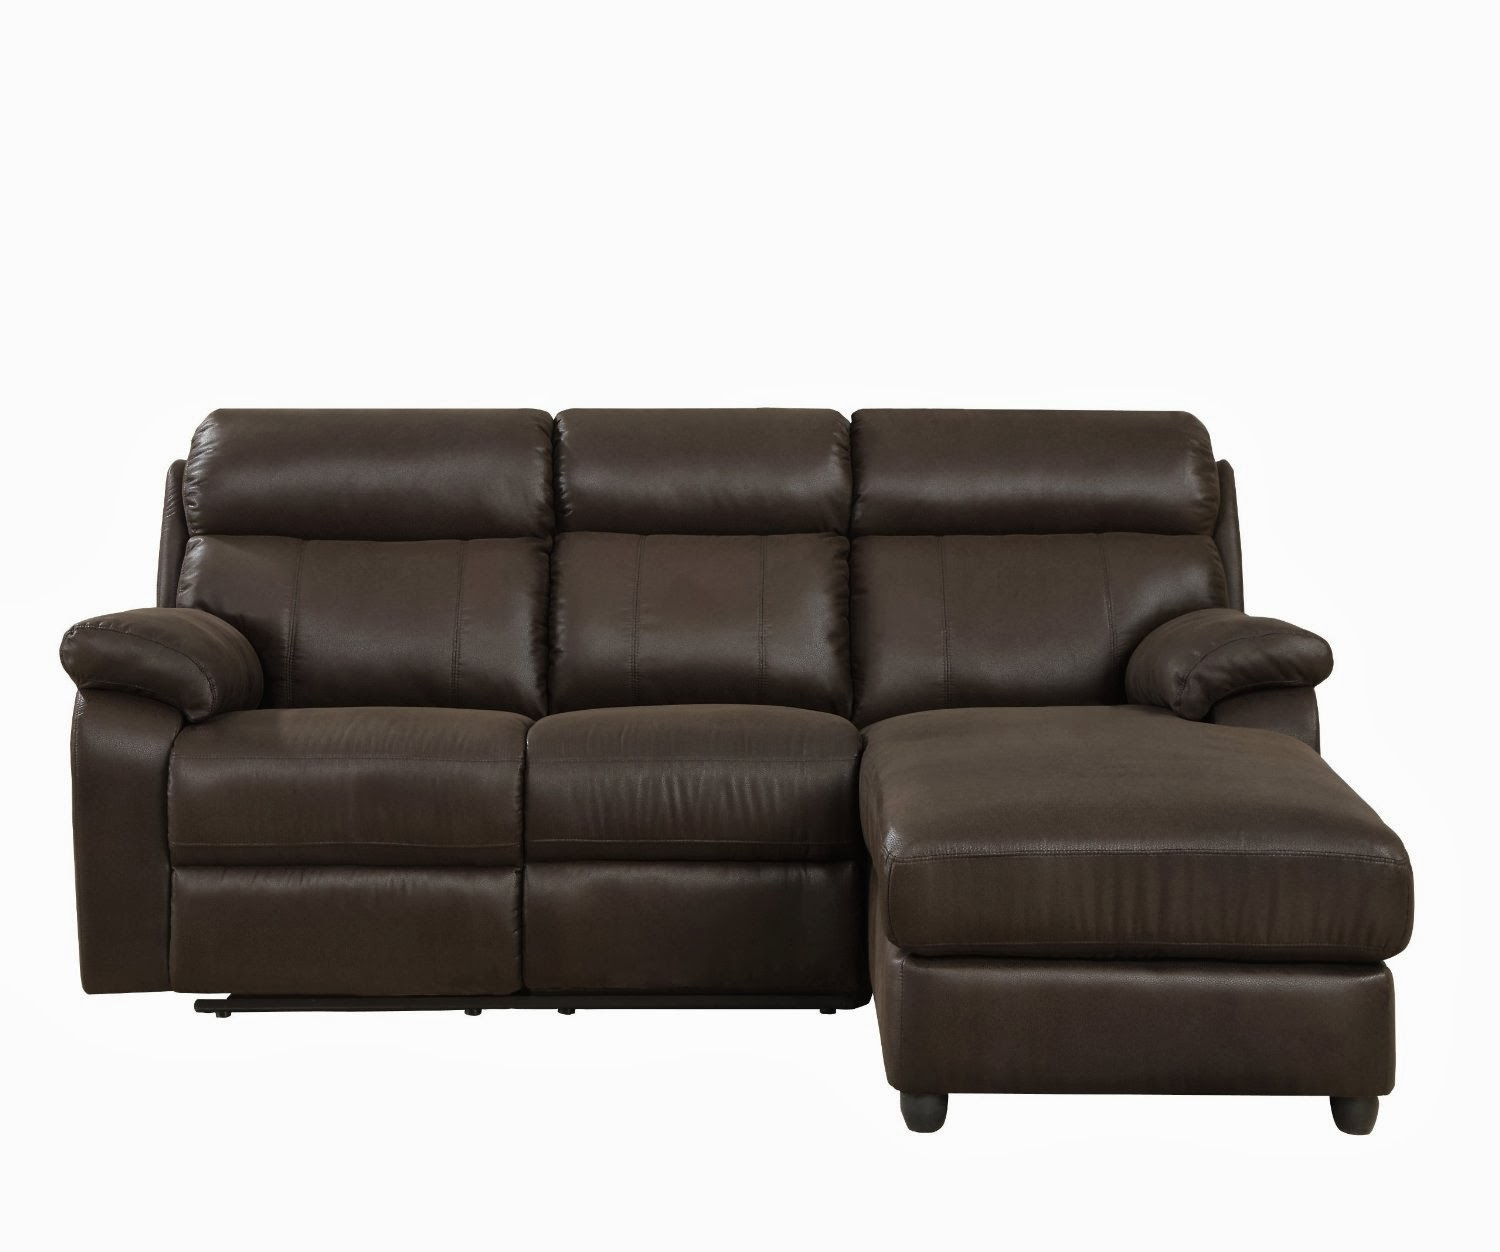 Small sectional sofas reviews small leather sectional sofa for Small sectional sofa